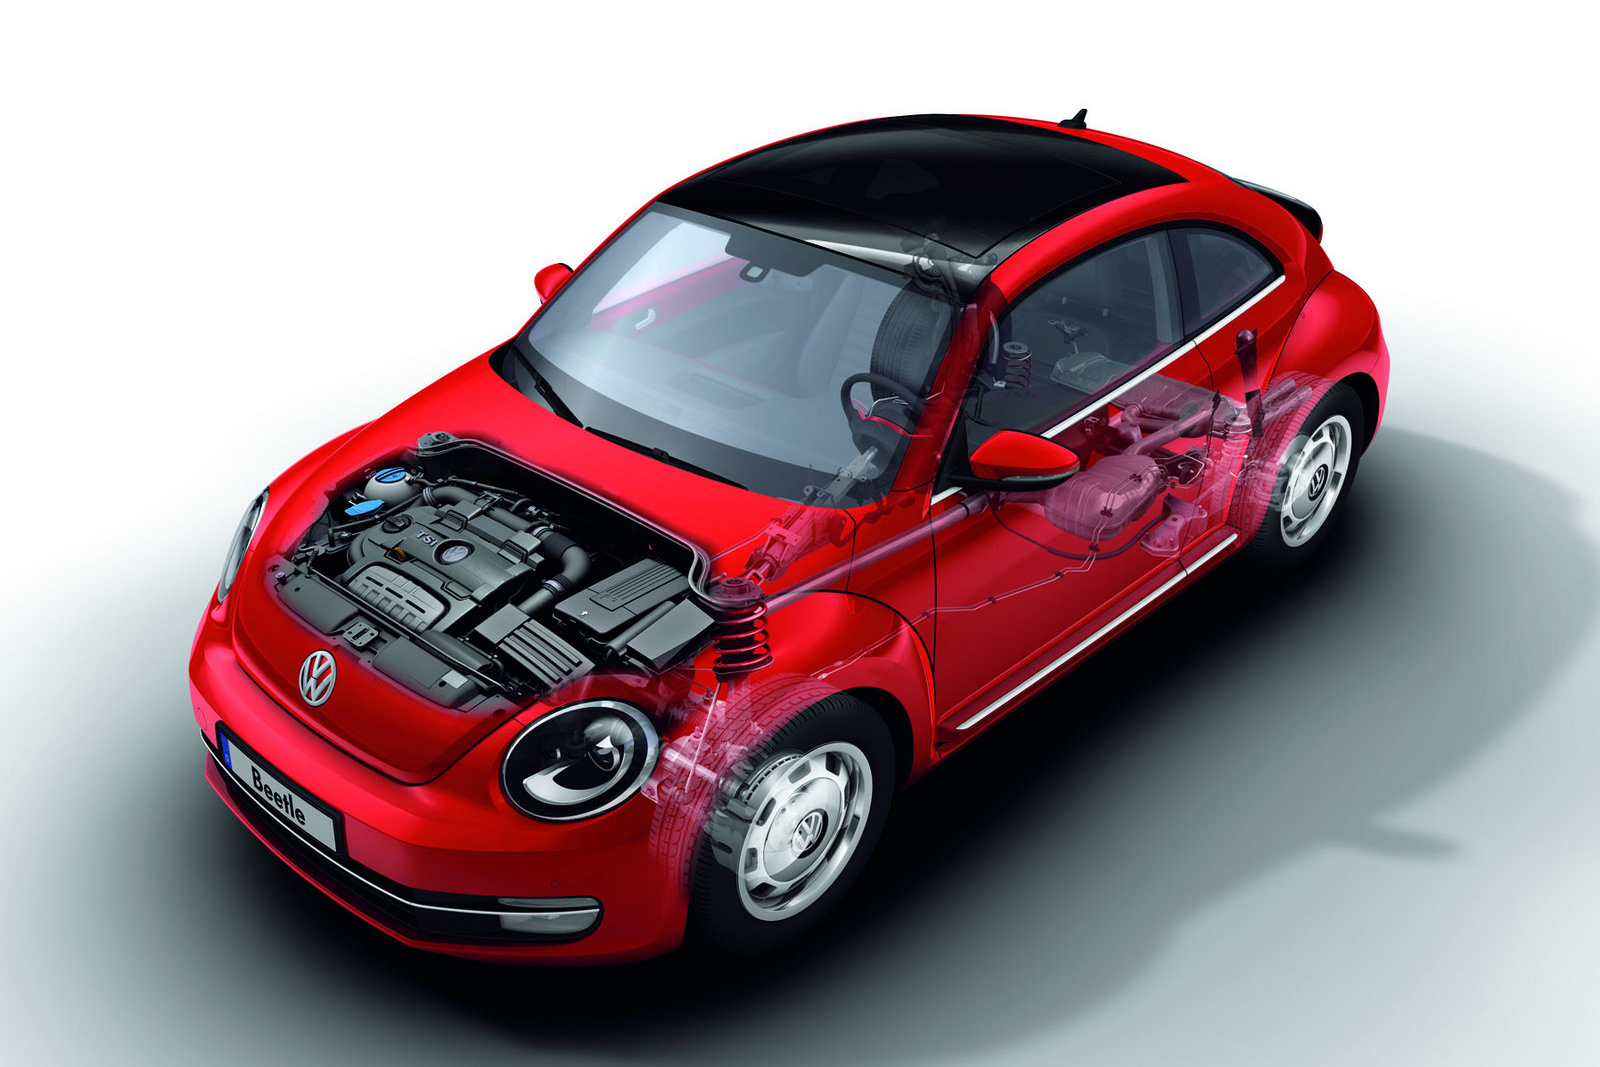 vw new beetle engine diagram image vw new beetle engine location vw get image about wiring diagram on 2004 vw new